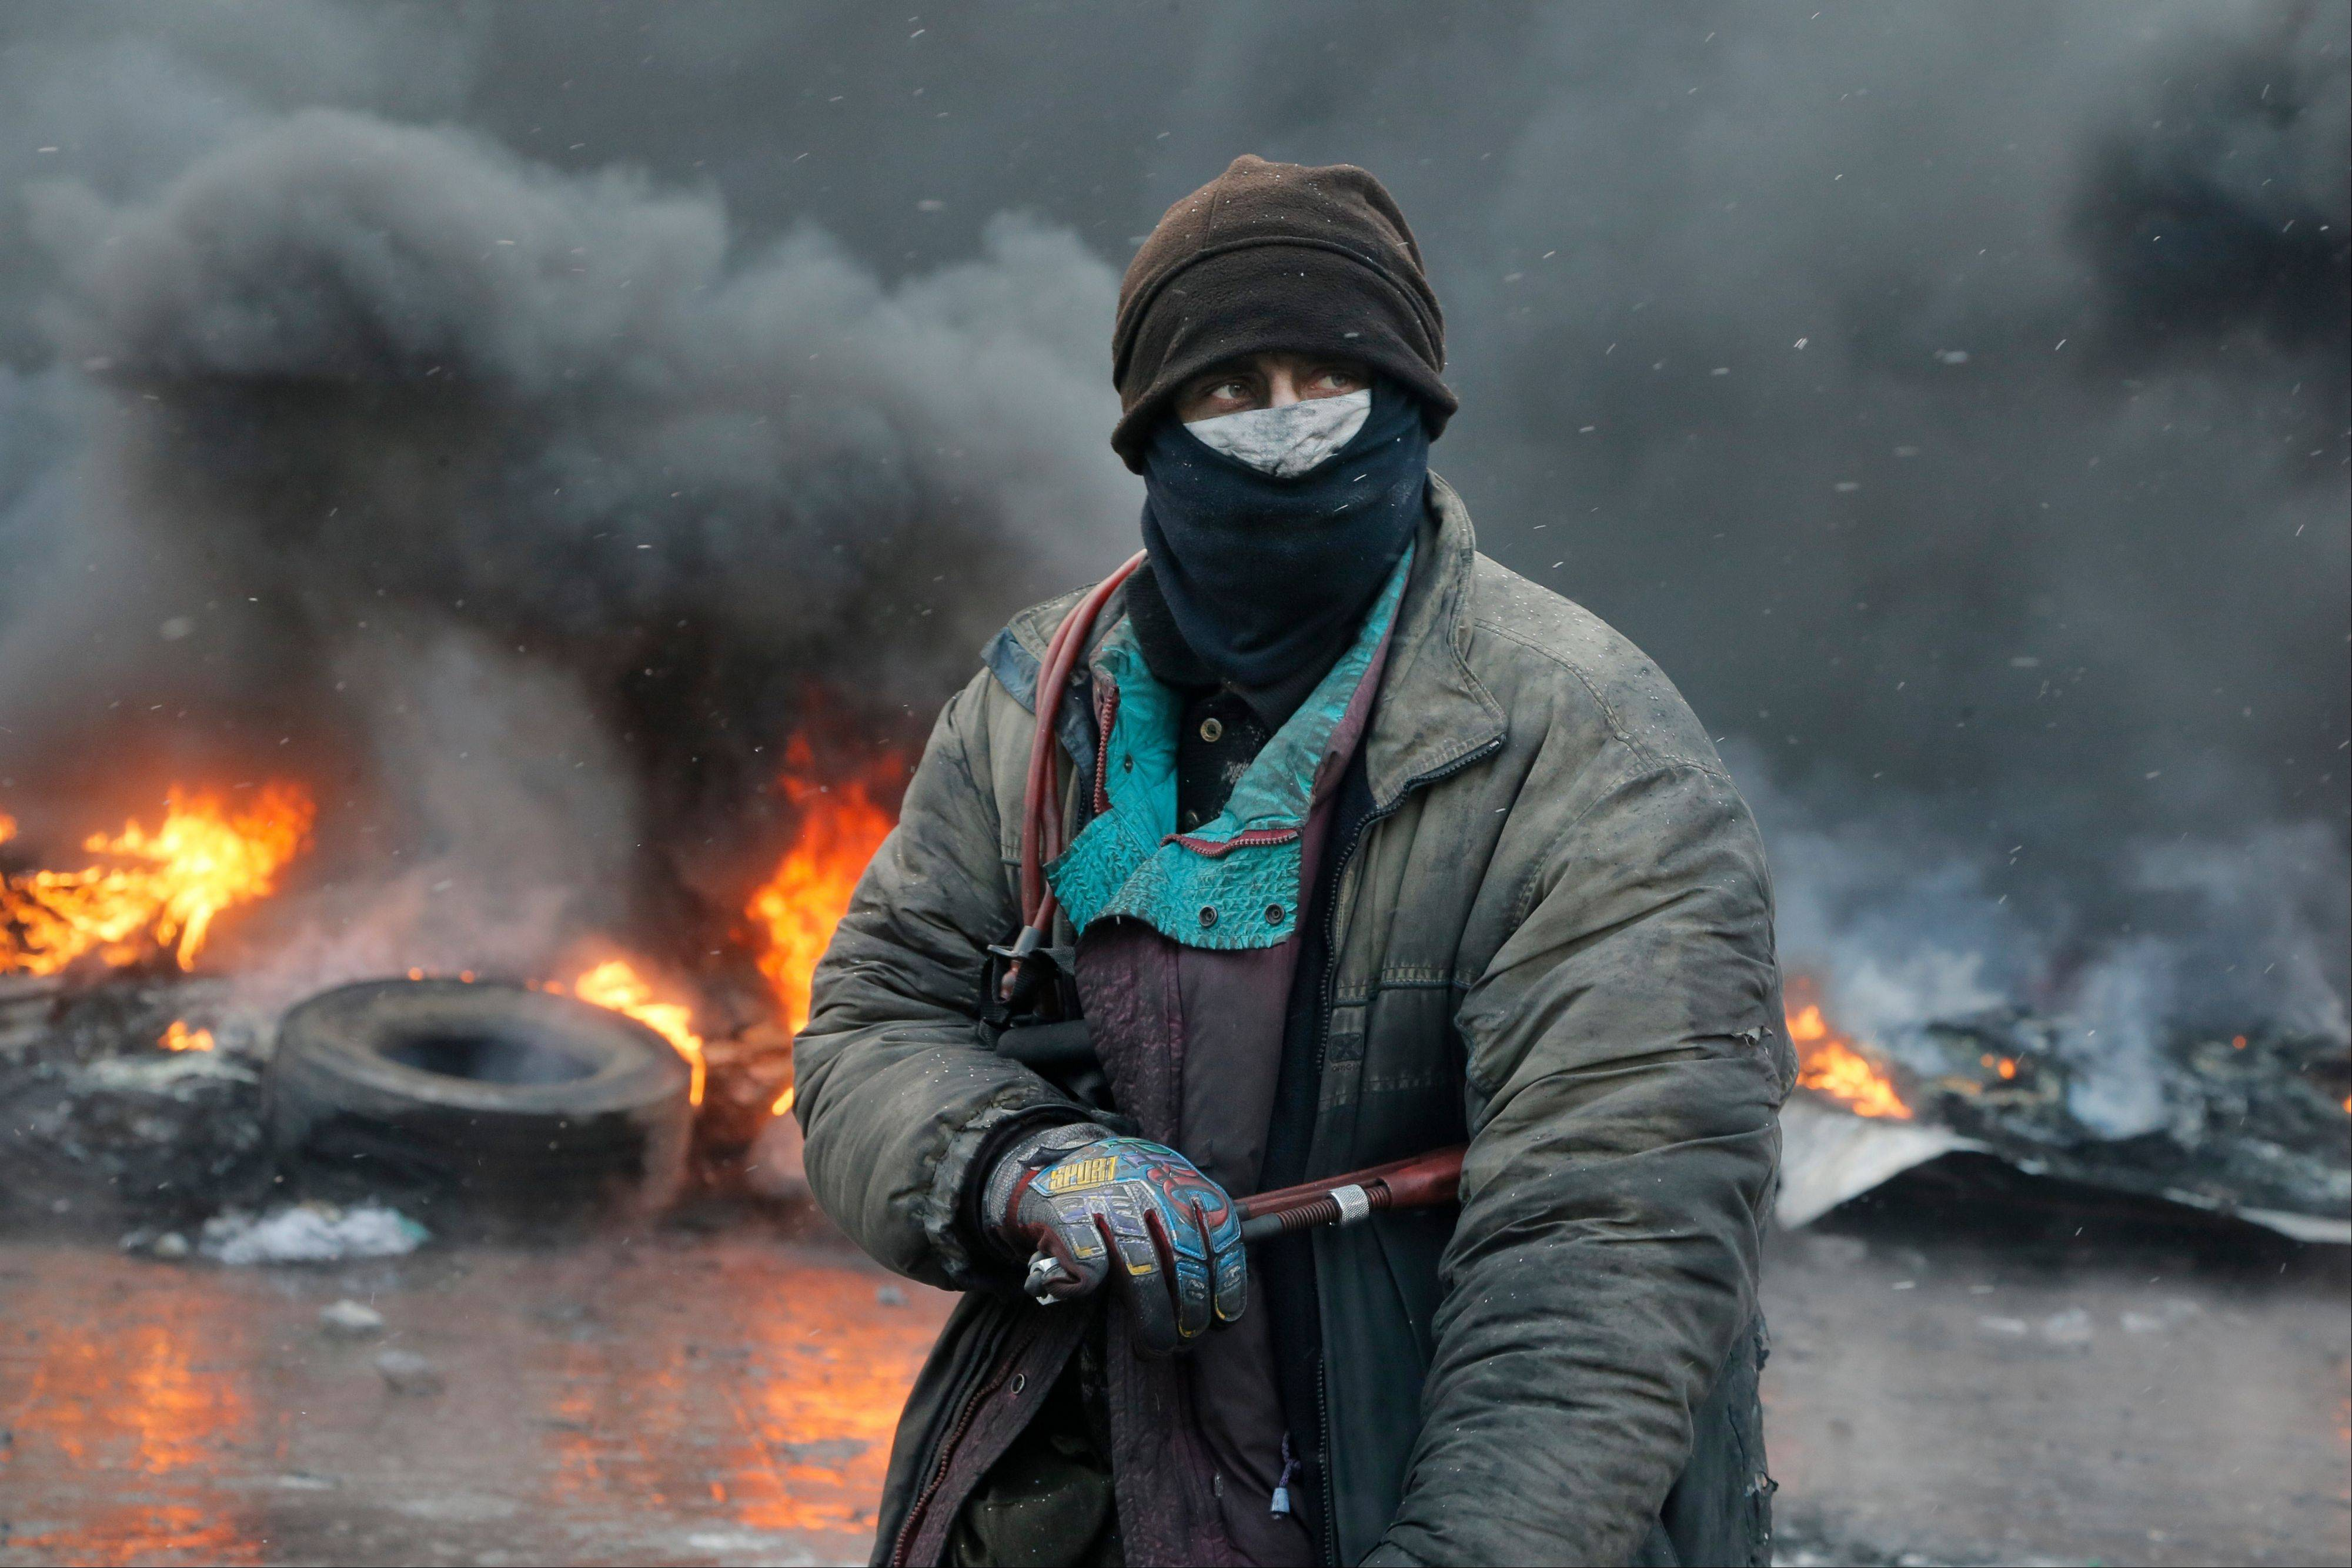 A protester stands at a burning barricades between police and protesters in central Kiev, Ukraine, Thursday. Thick black smoke from burning tires engulfed parts of downtown Kiev as an ultimatum issued by the opposition to the president to call early election or face street rage was set to expire with no sign of a compromise on Thursday.